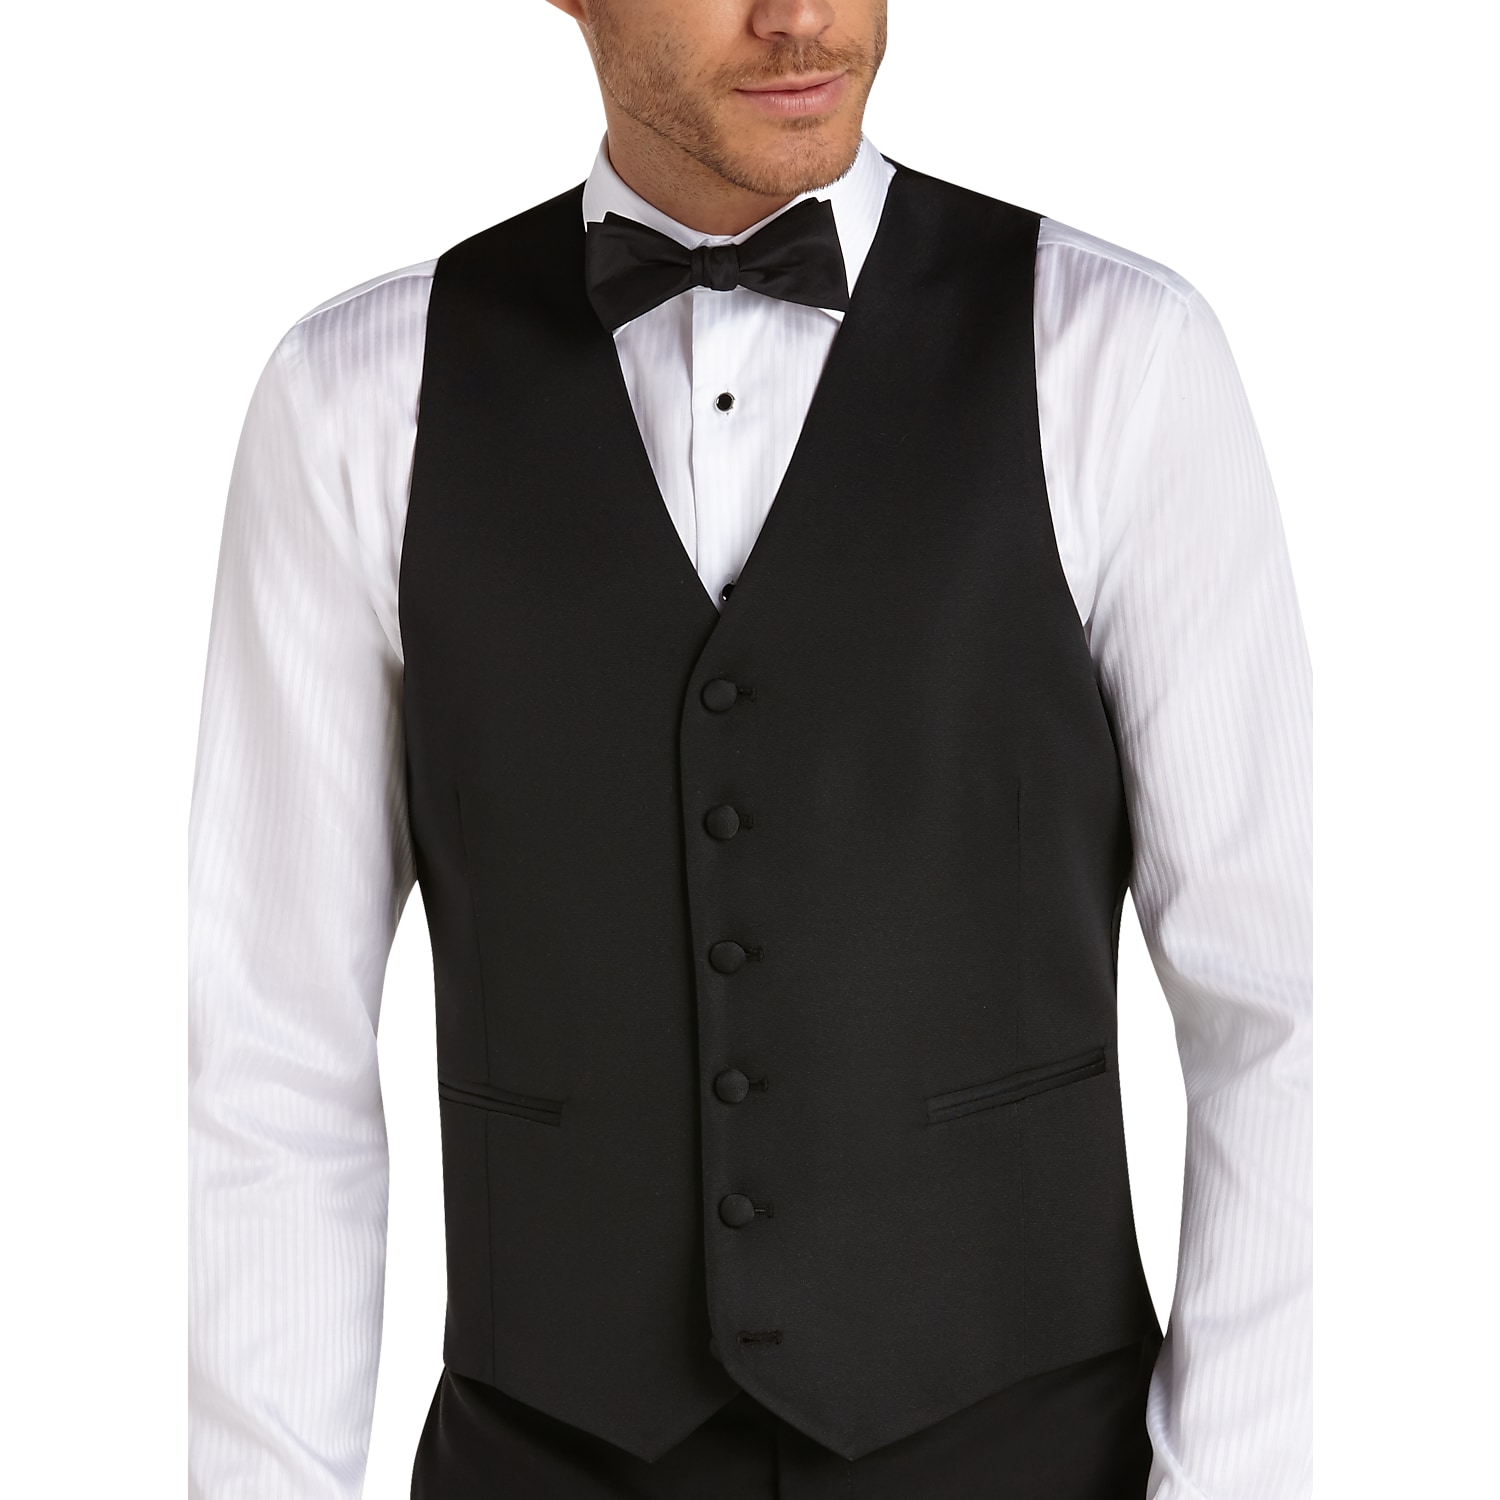 ccd50d2a83d1 Mens Vests, Suits - BLACK by Vera Wang Black Slim Fit Tuxedo Vest - Men's